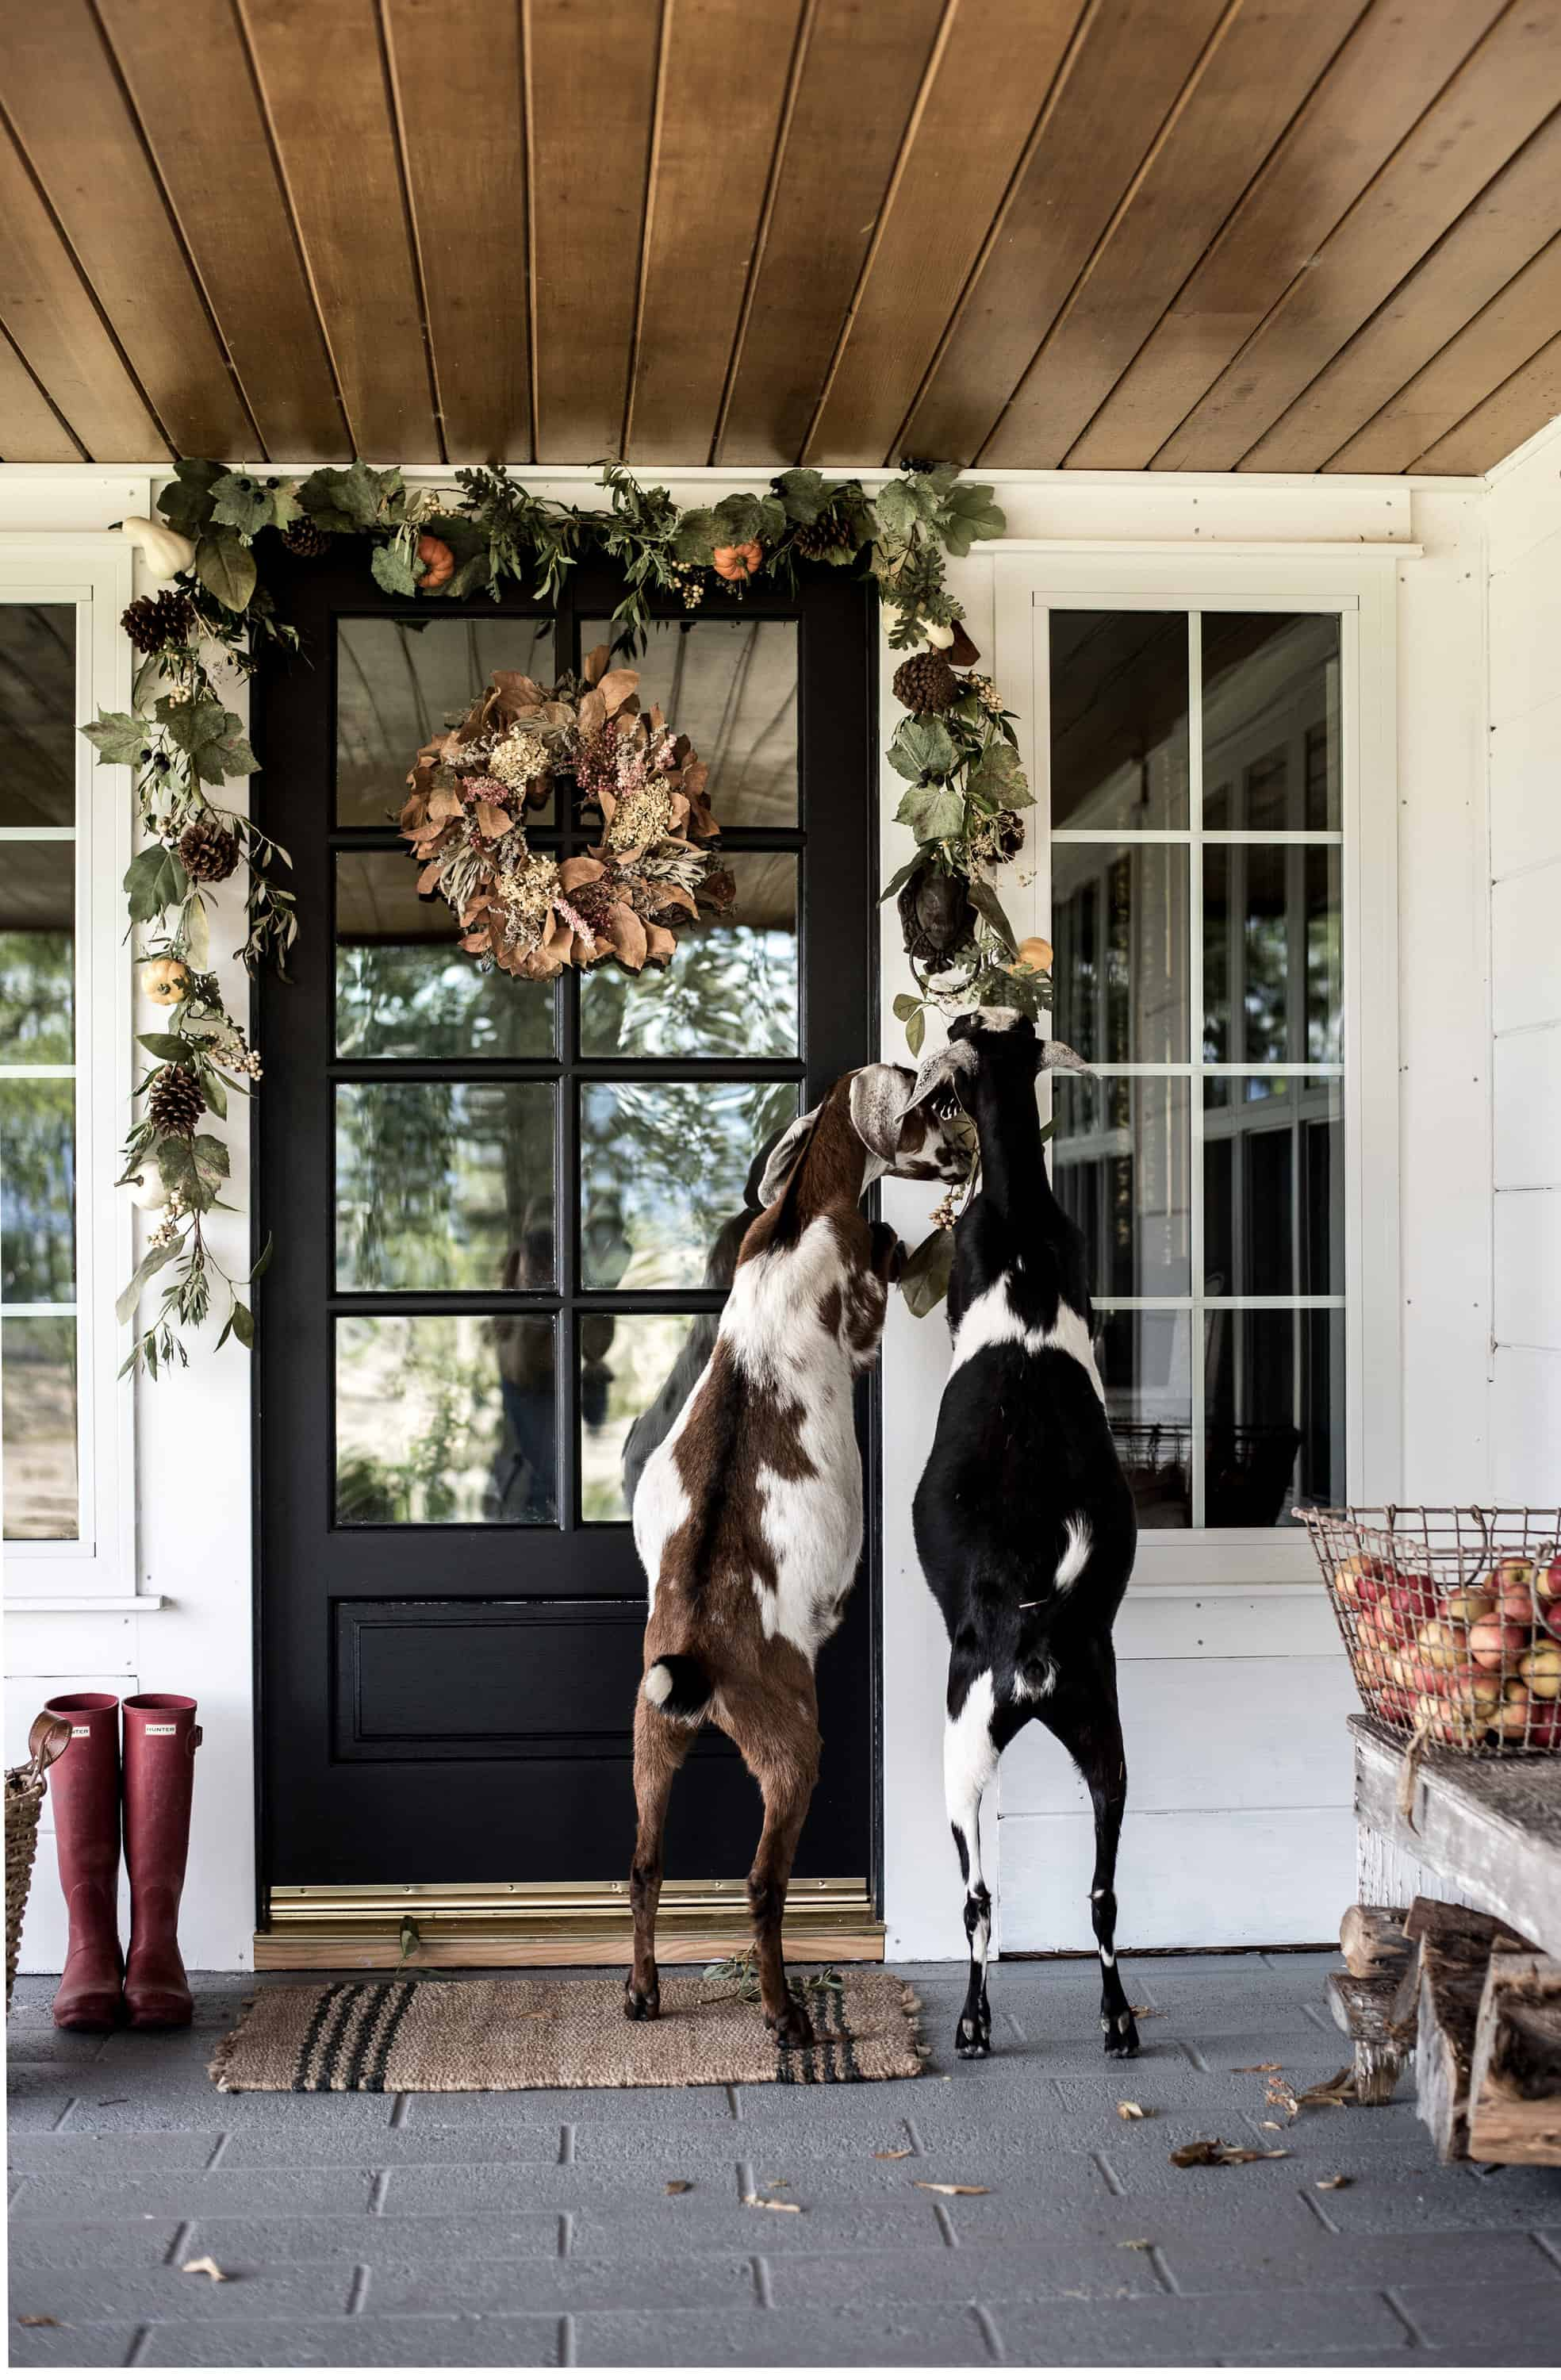 Fall is officially here, so it's safe to break out that fall porch decor! Get inspired to decorate for fall with these simple decorating ideas!